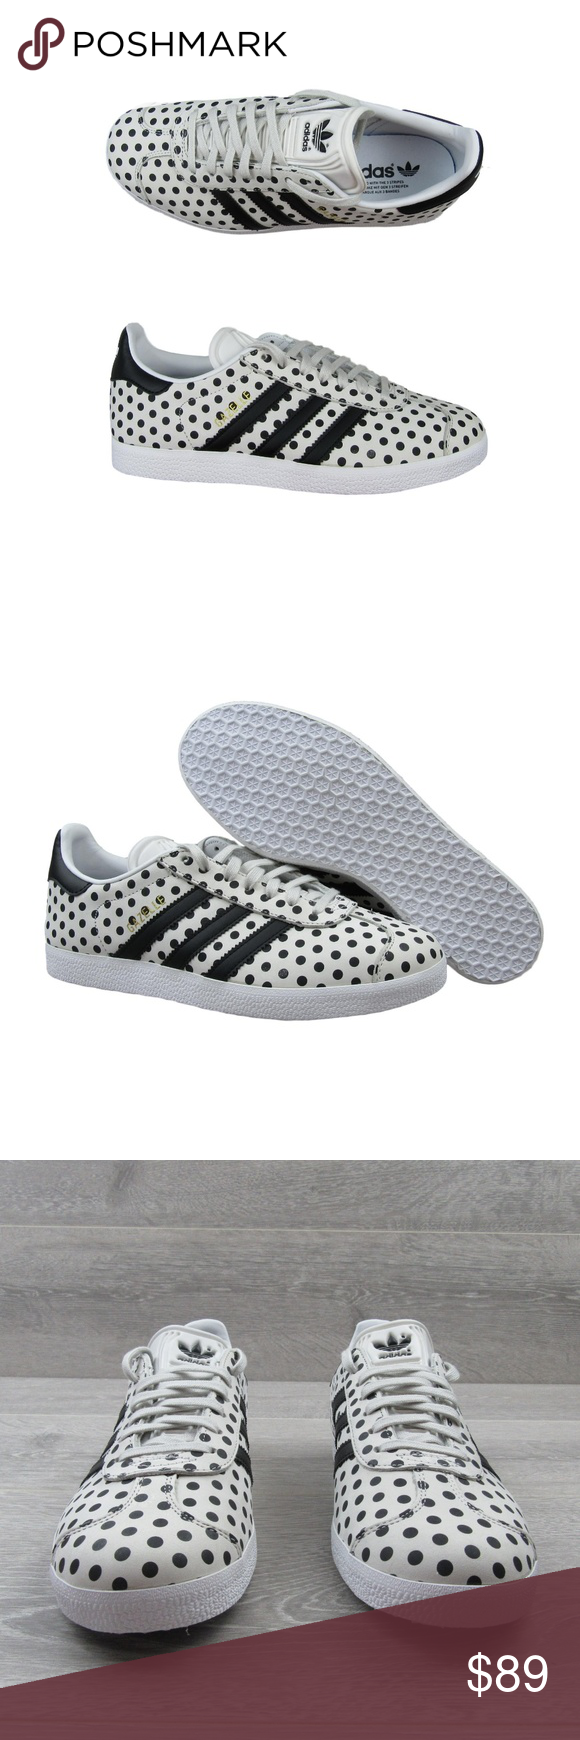 buy online 69843 ff6ce Adidas X The Farm Gazelle Polka Dot Shoes Womens PRICE IS FIRM - NO TRADES  OR OFFERS - Thank You Adidas X The Farm Gazelle Polka Dot Shoes Womens  Multi ...